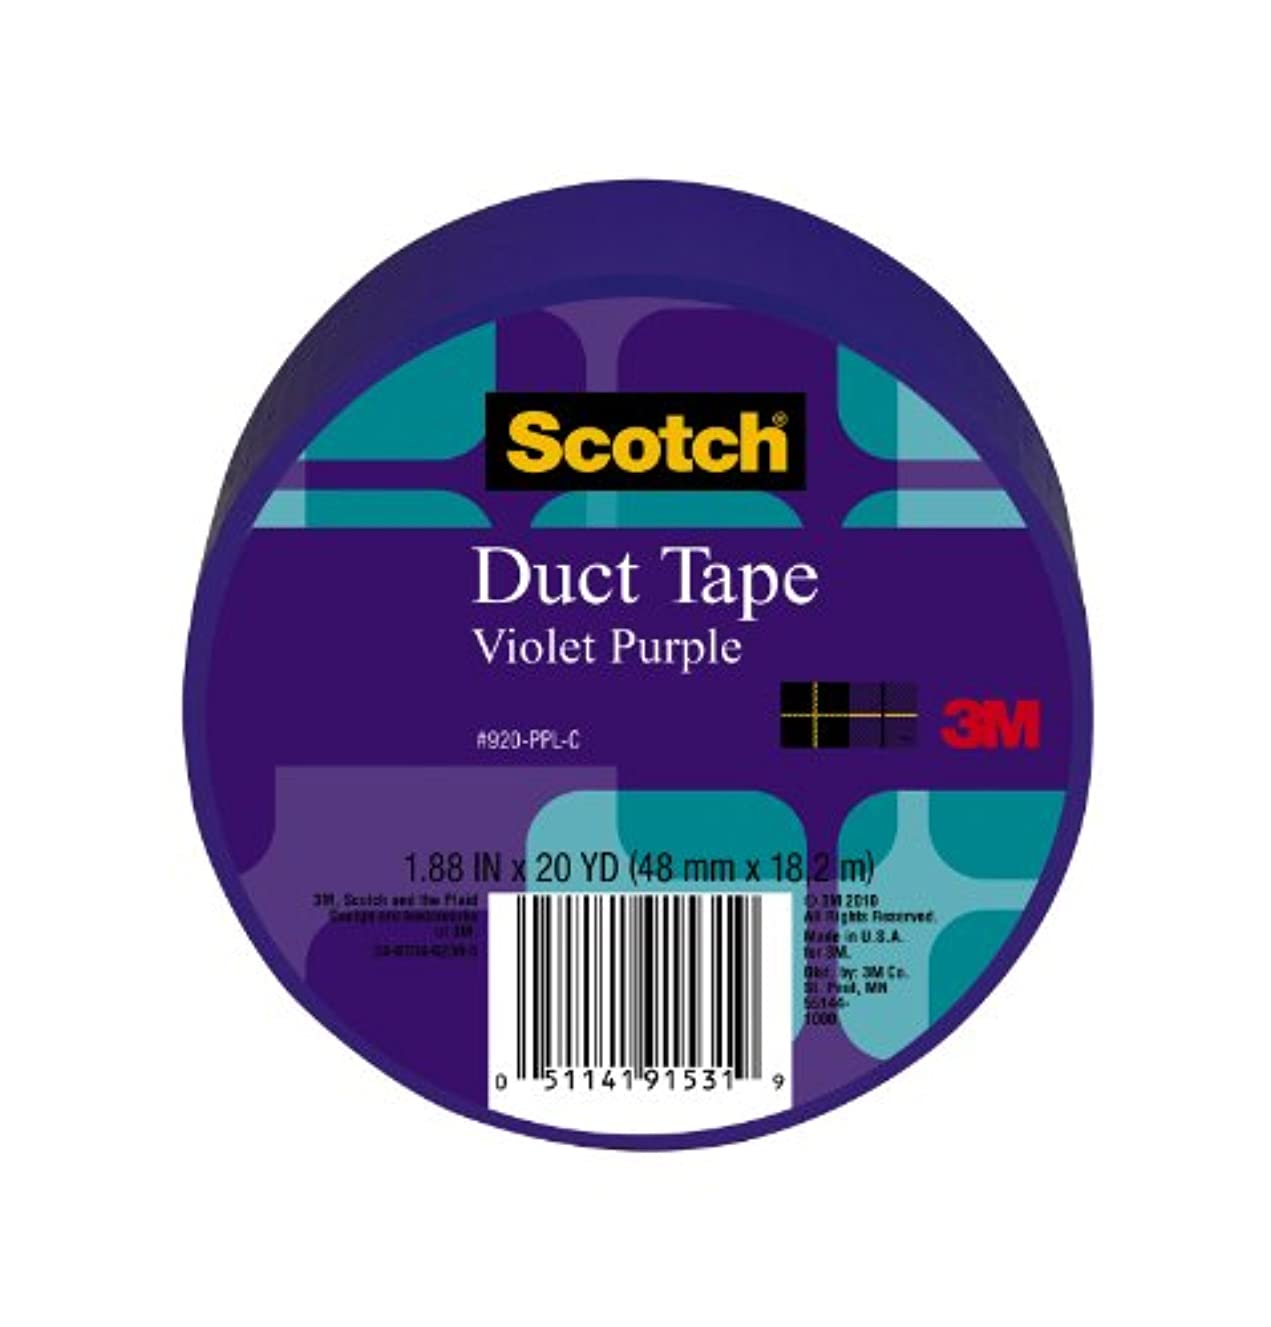 Scotch Duct Tape, Violet Purple, 1.88-Inch by 20-Yard, 6-Pack